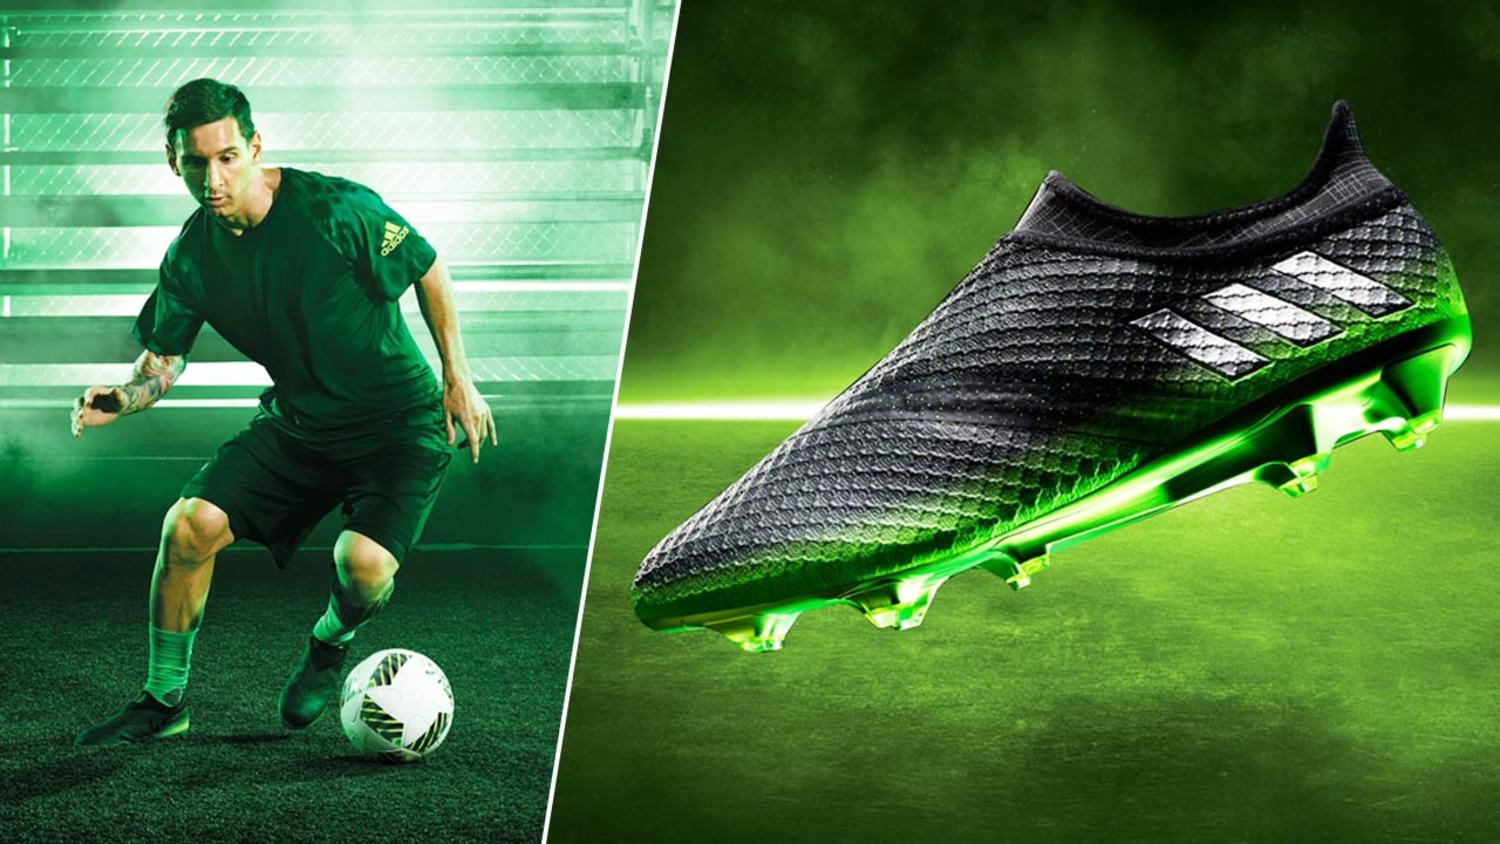 Adidas Release Wicked New Messi 16+ Space Dust Boots